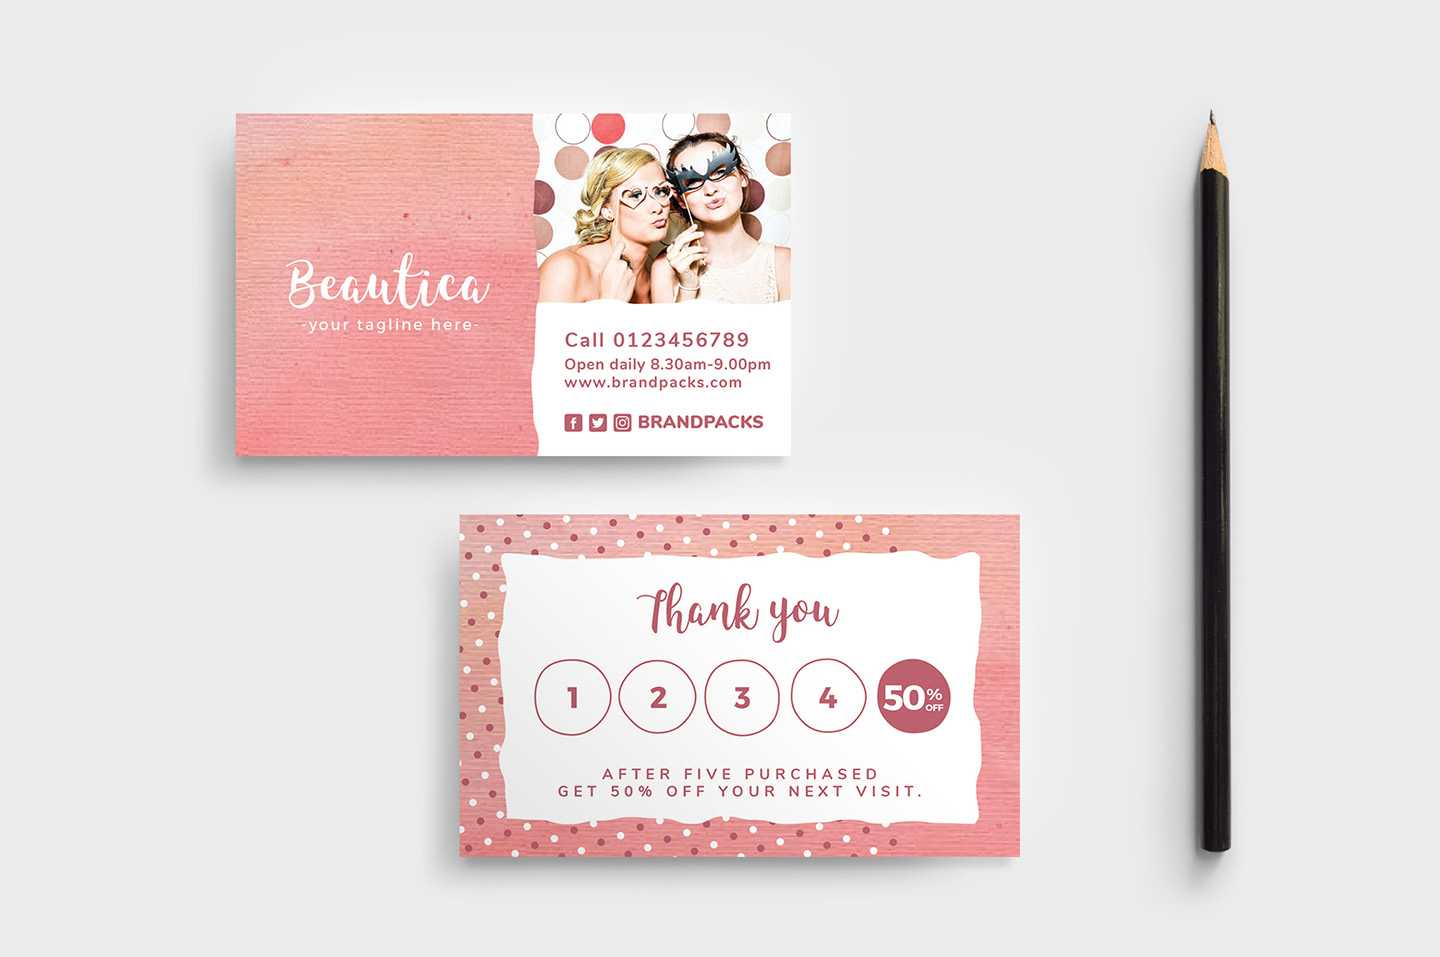 Free Loyalty Card Templates - Psd, Ai & Vector - Brandpacks Intended For Customer Loyalty Card Template Free